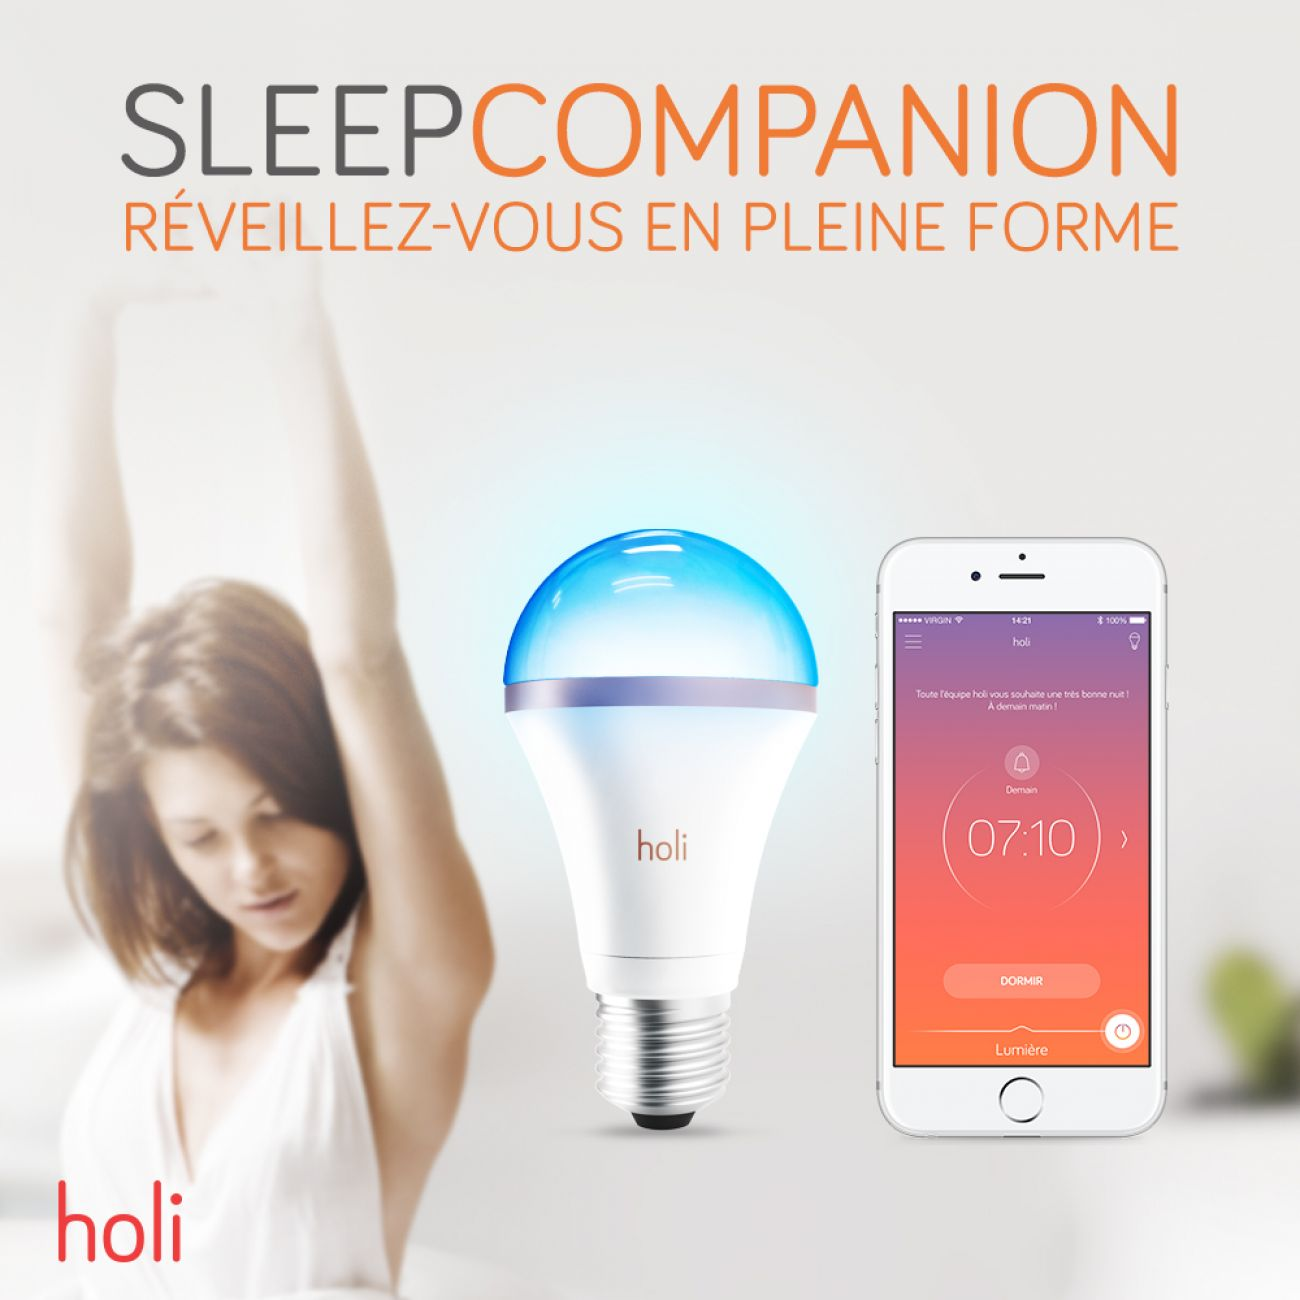 Seconde Image produit Sleepcompanion